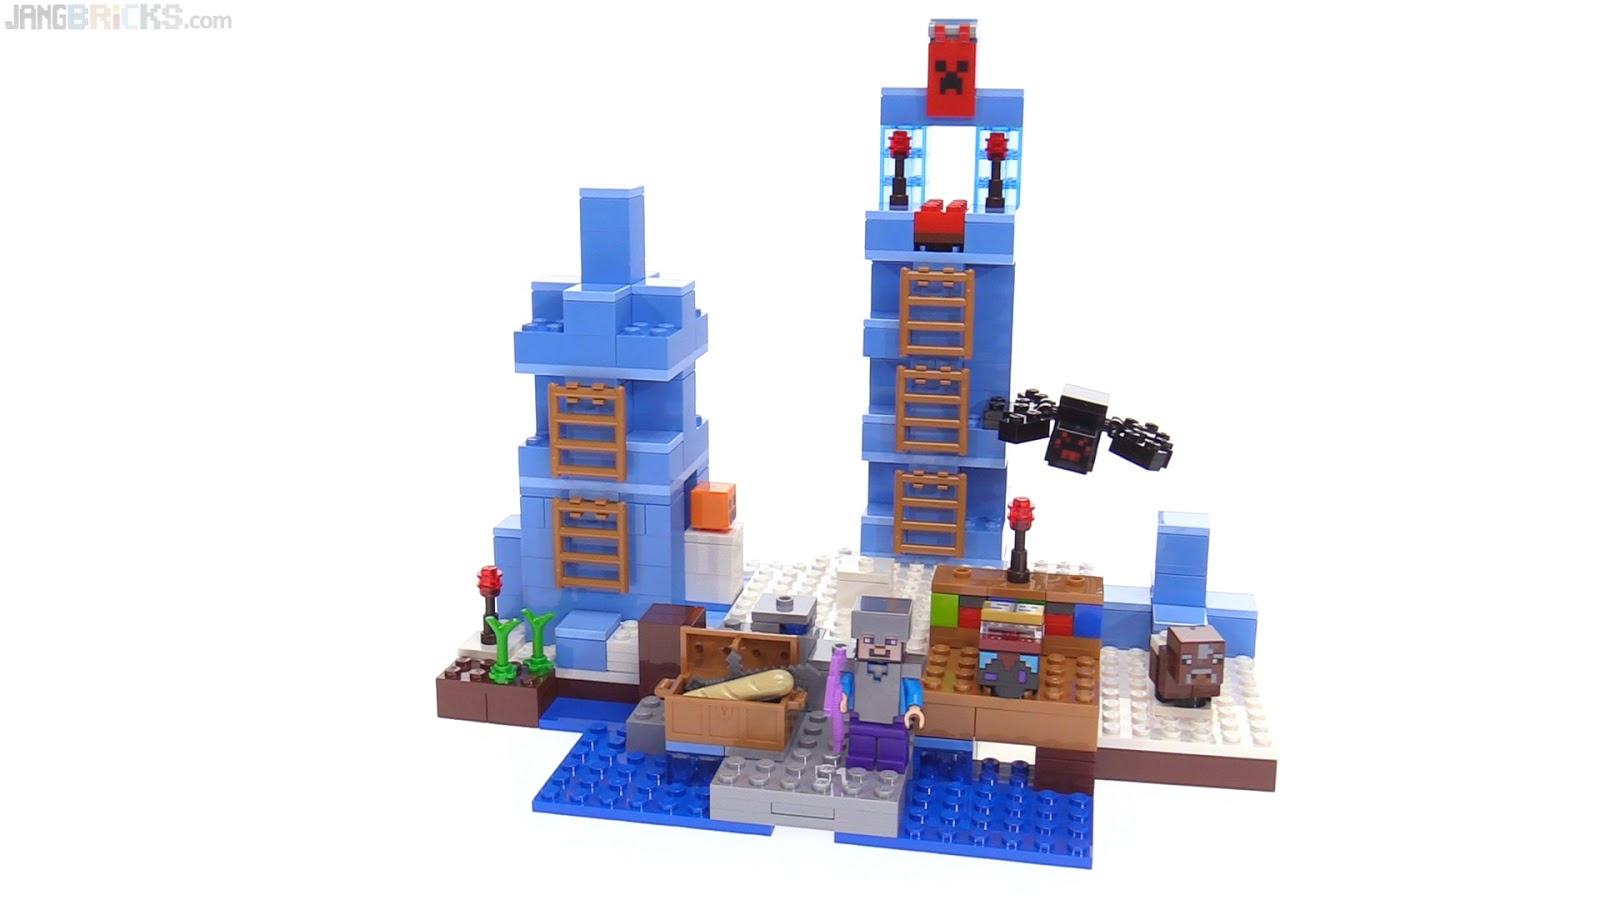 Jangbricks Lego Reviews Mocs February 2017 21134 Minecraft The Waterfall Base Ice Spikes Review 21131